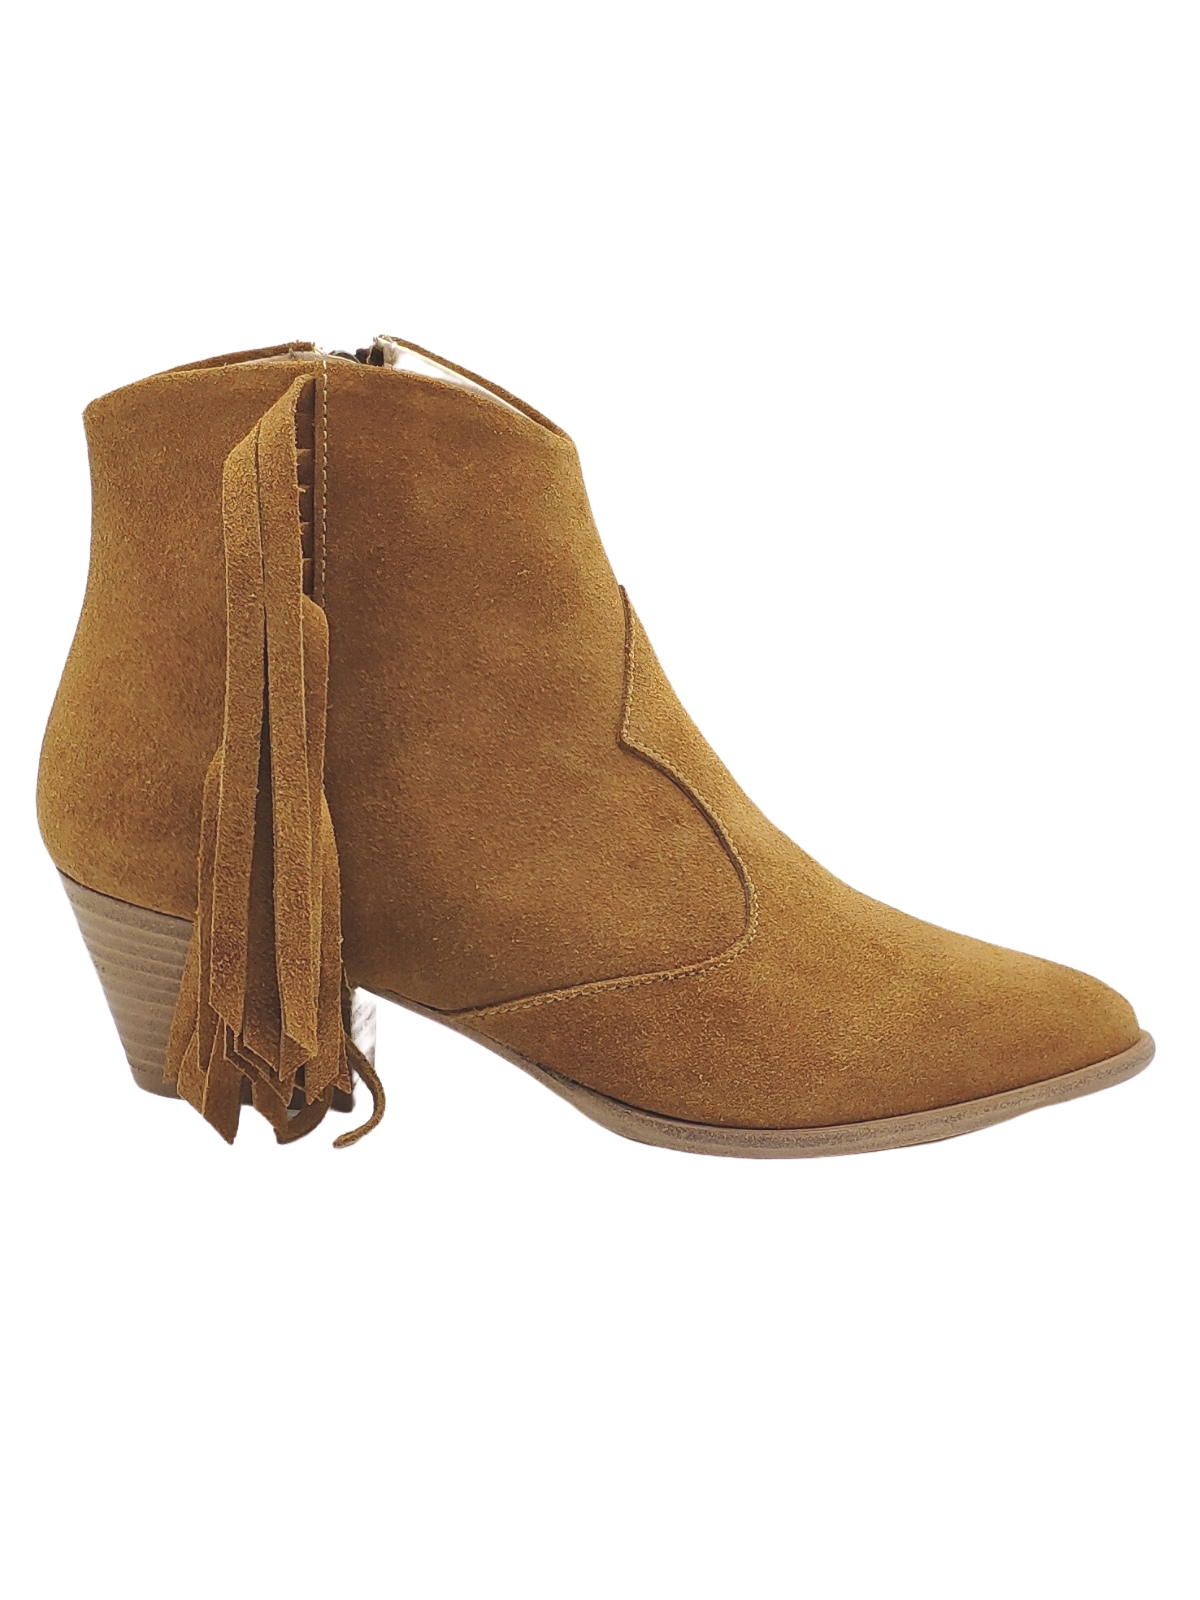 Women's Texan Ankle Boots with Fringes Spatarella | Ankle Boots | F46CUOIO